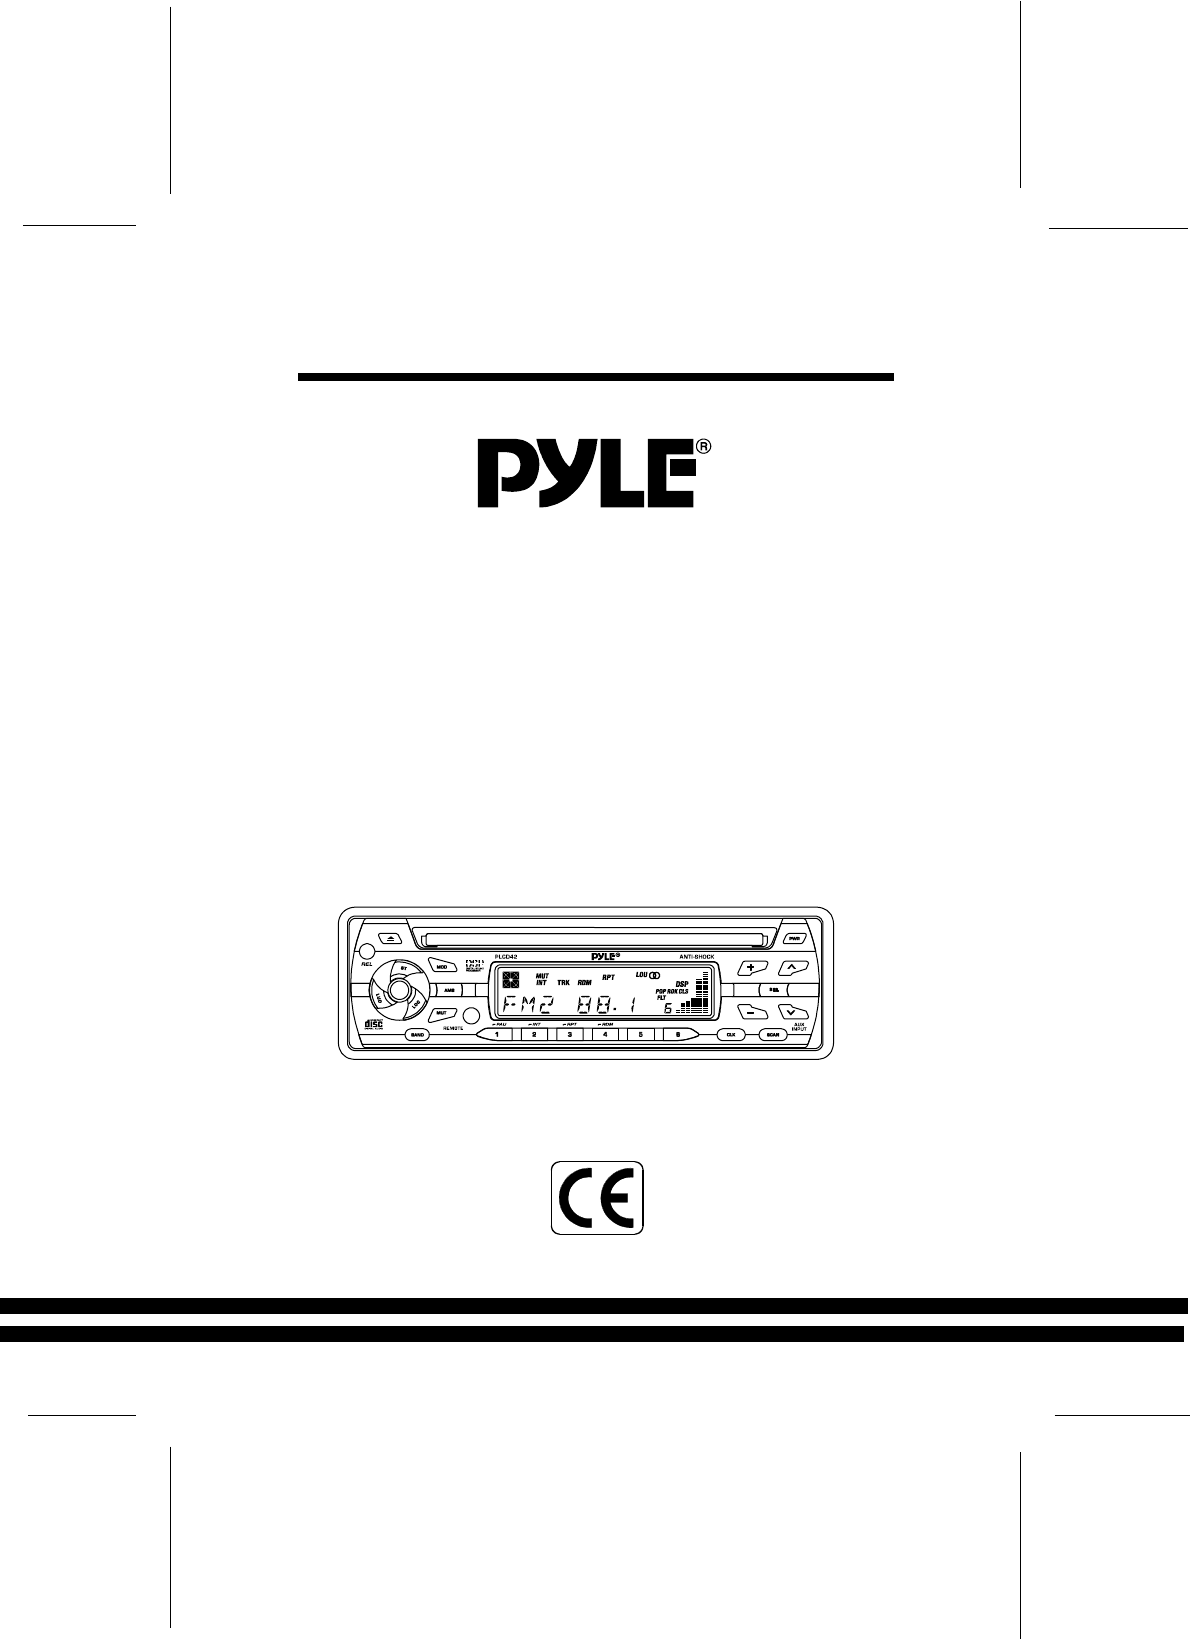 Pyle Audio Car Stereo Wiring Diagram Trusted Diagrams Pldnv695 Radio Pld34mub Residential Electrical Symbols U2022 Amp